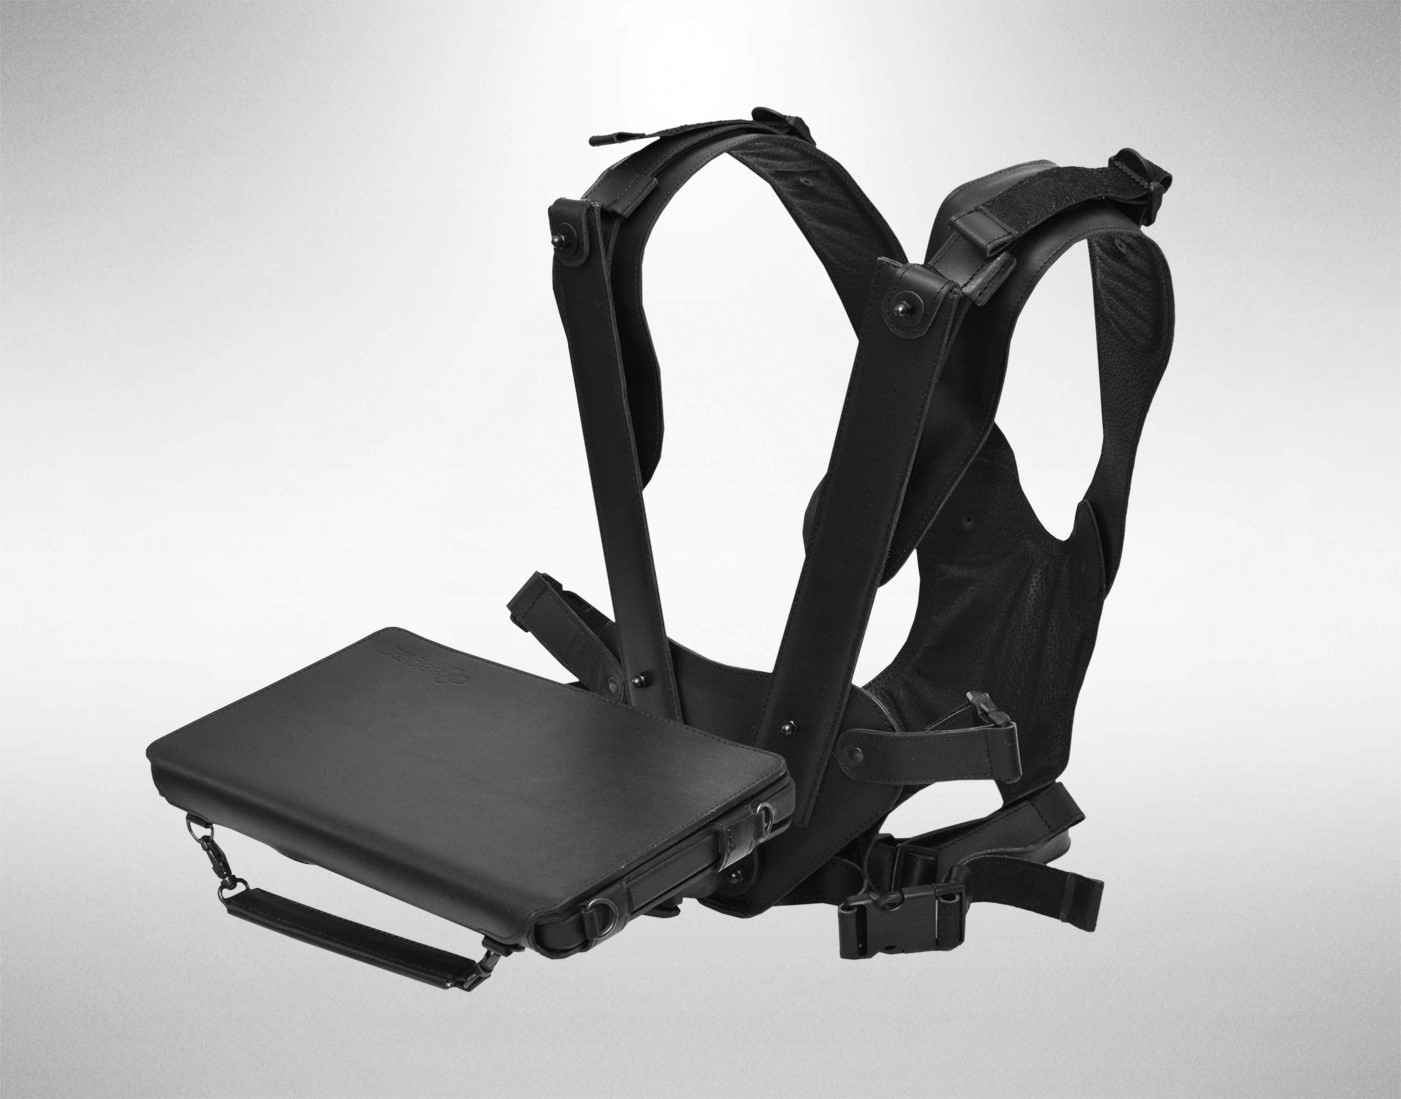 Hands-free Tablet Harness